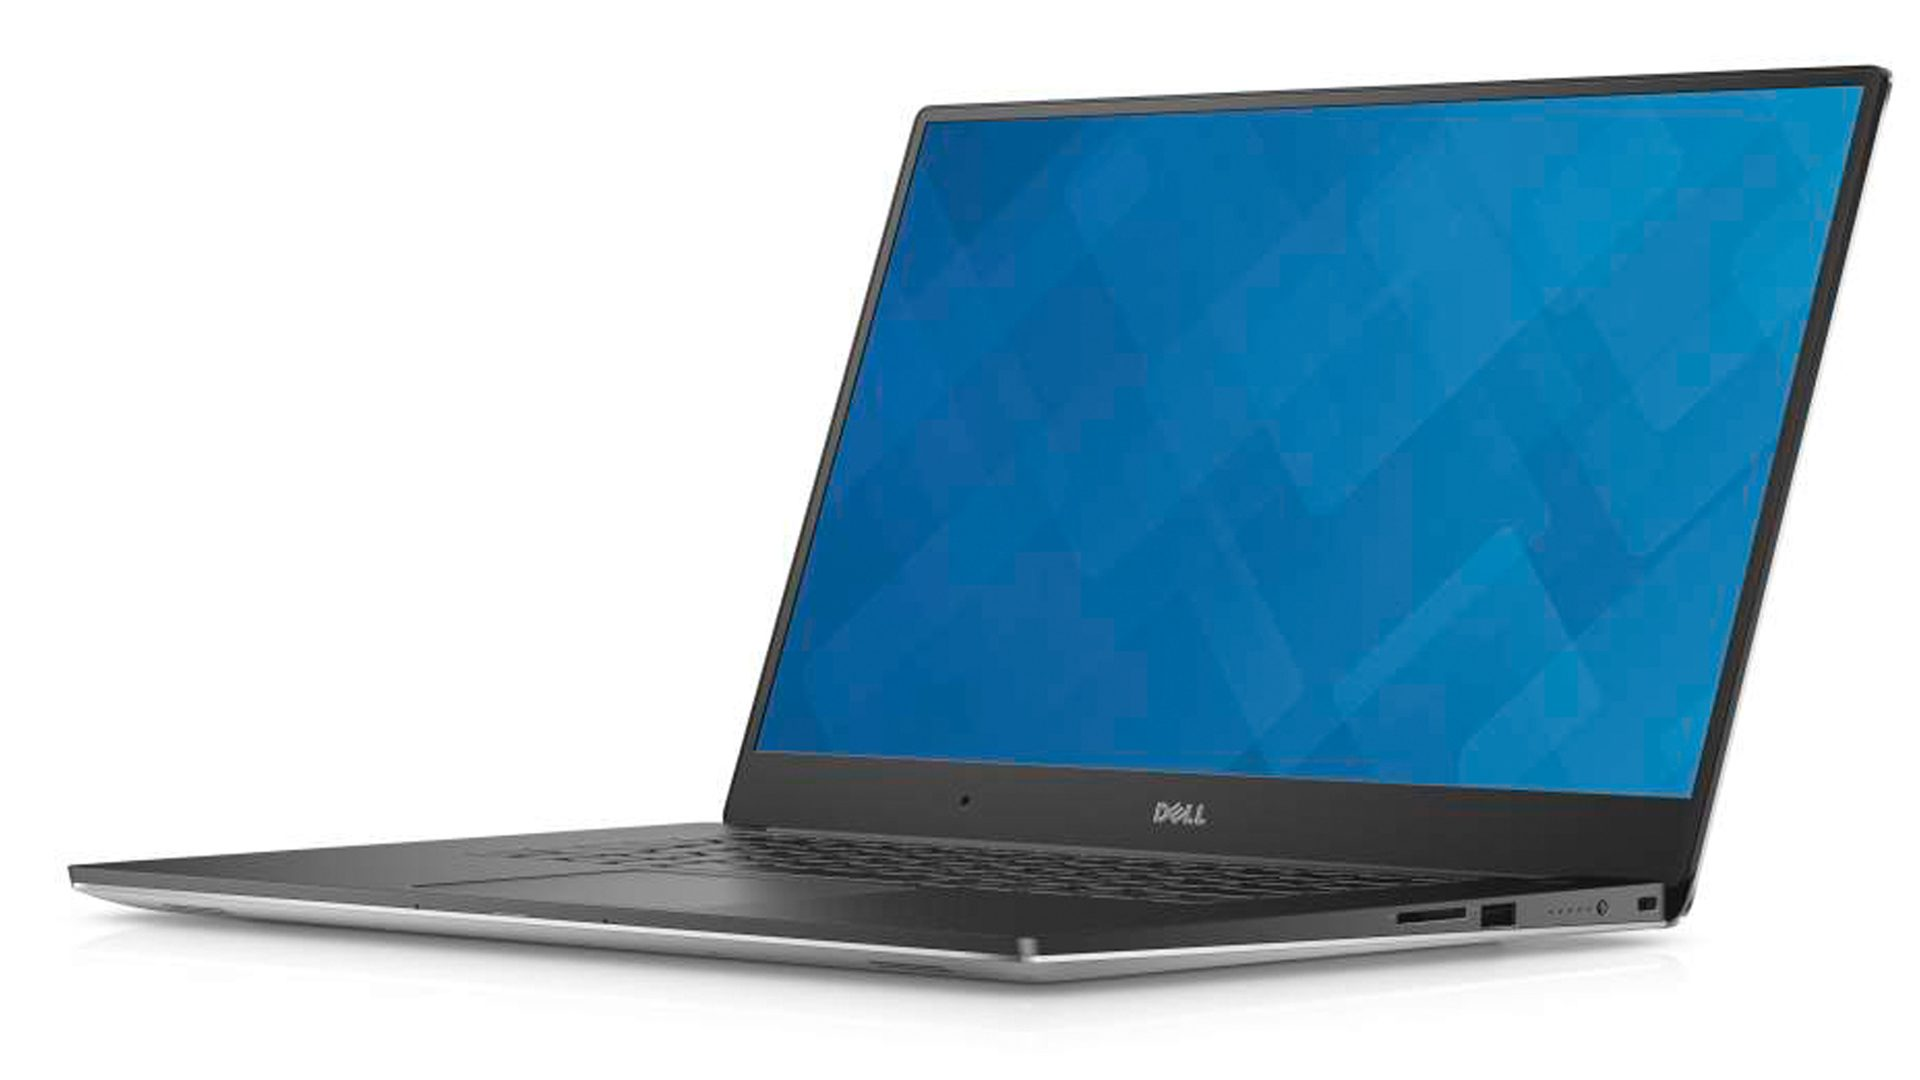 Dell-XPS-15-9550-3813-Ultrabook-Ansichten_3